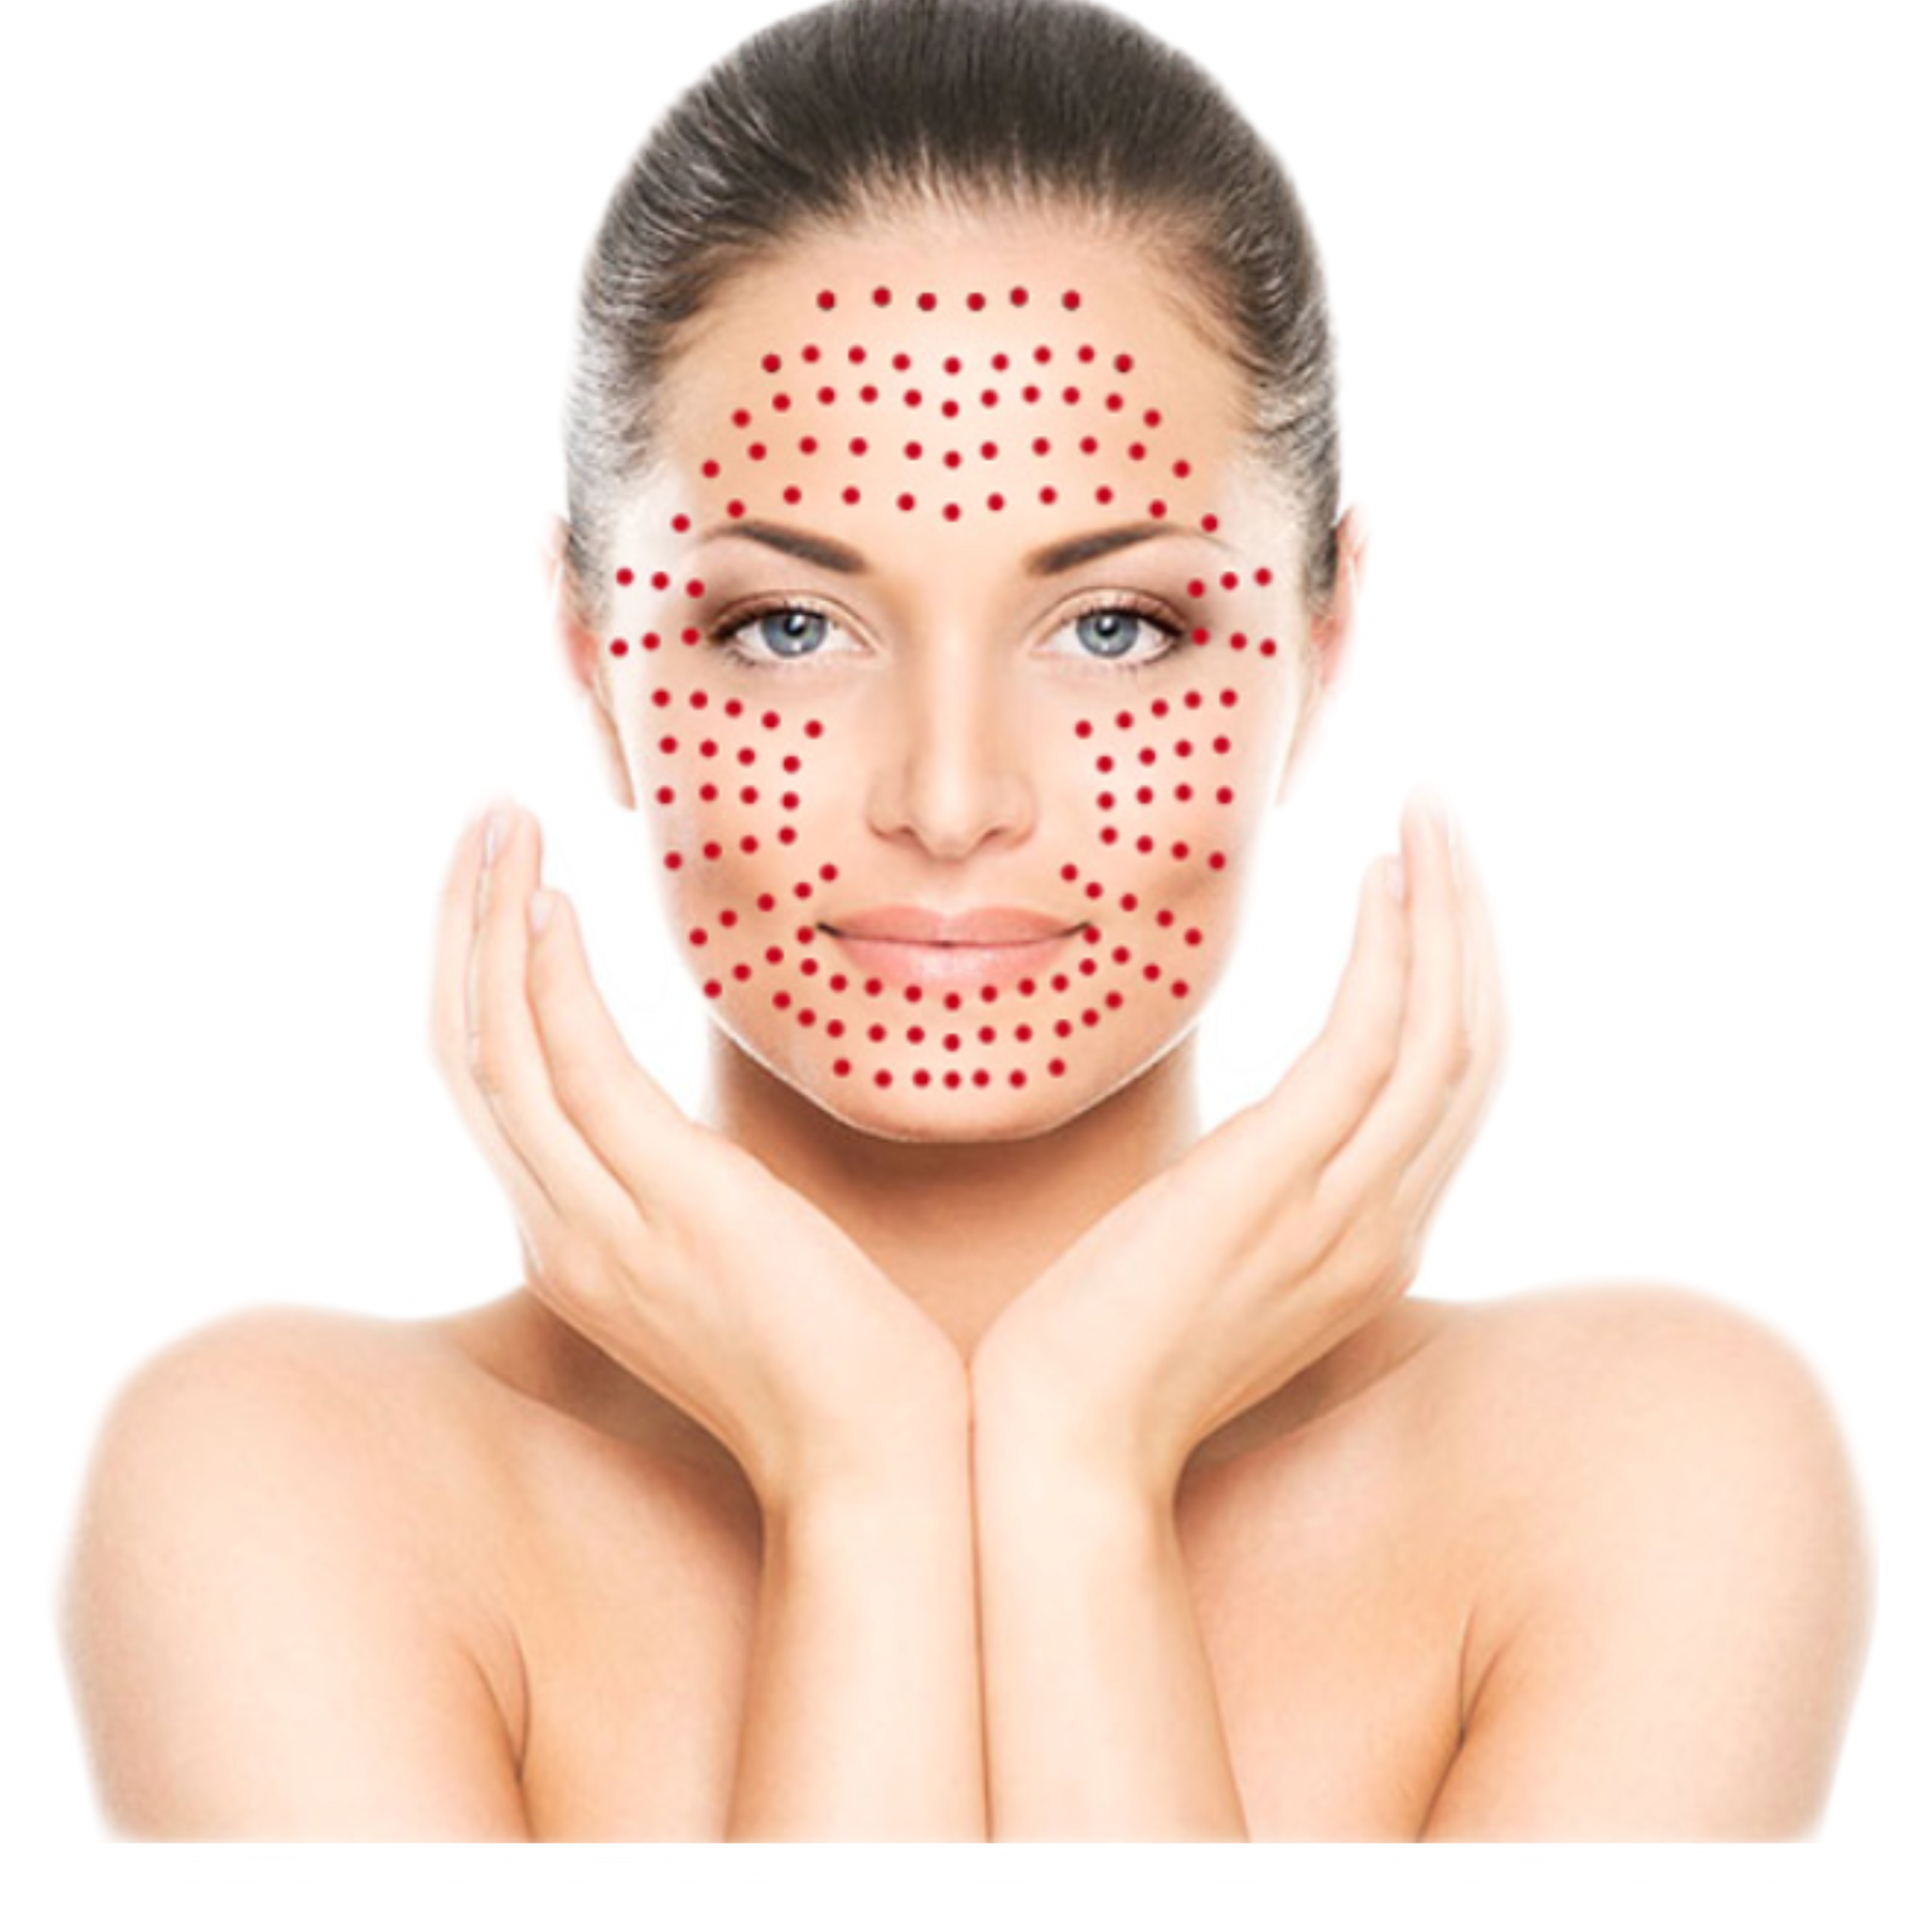 Collagen Induction/Microneedling-Face